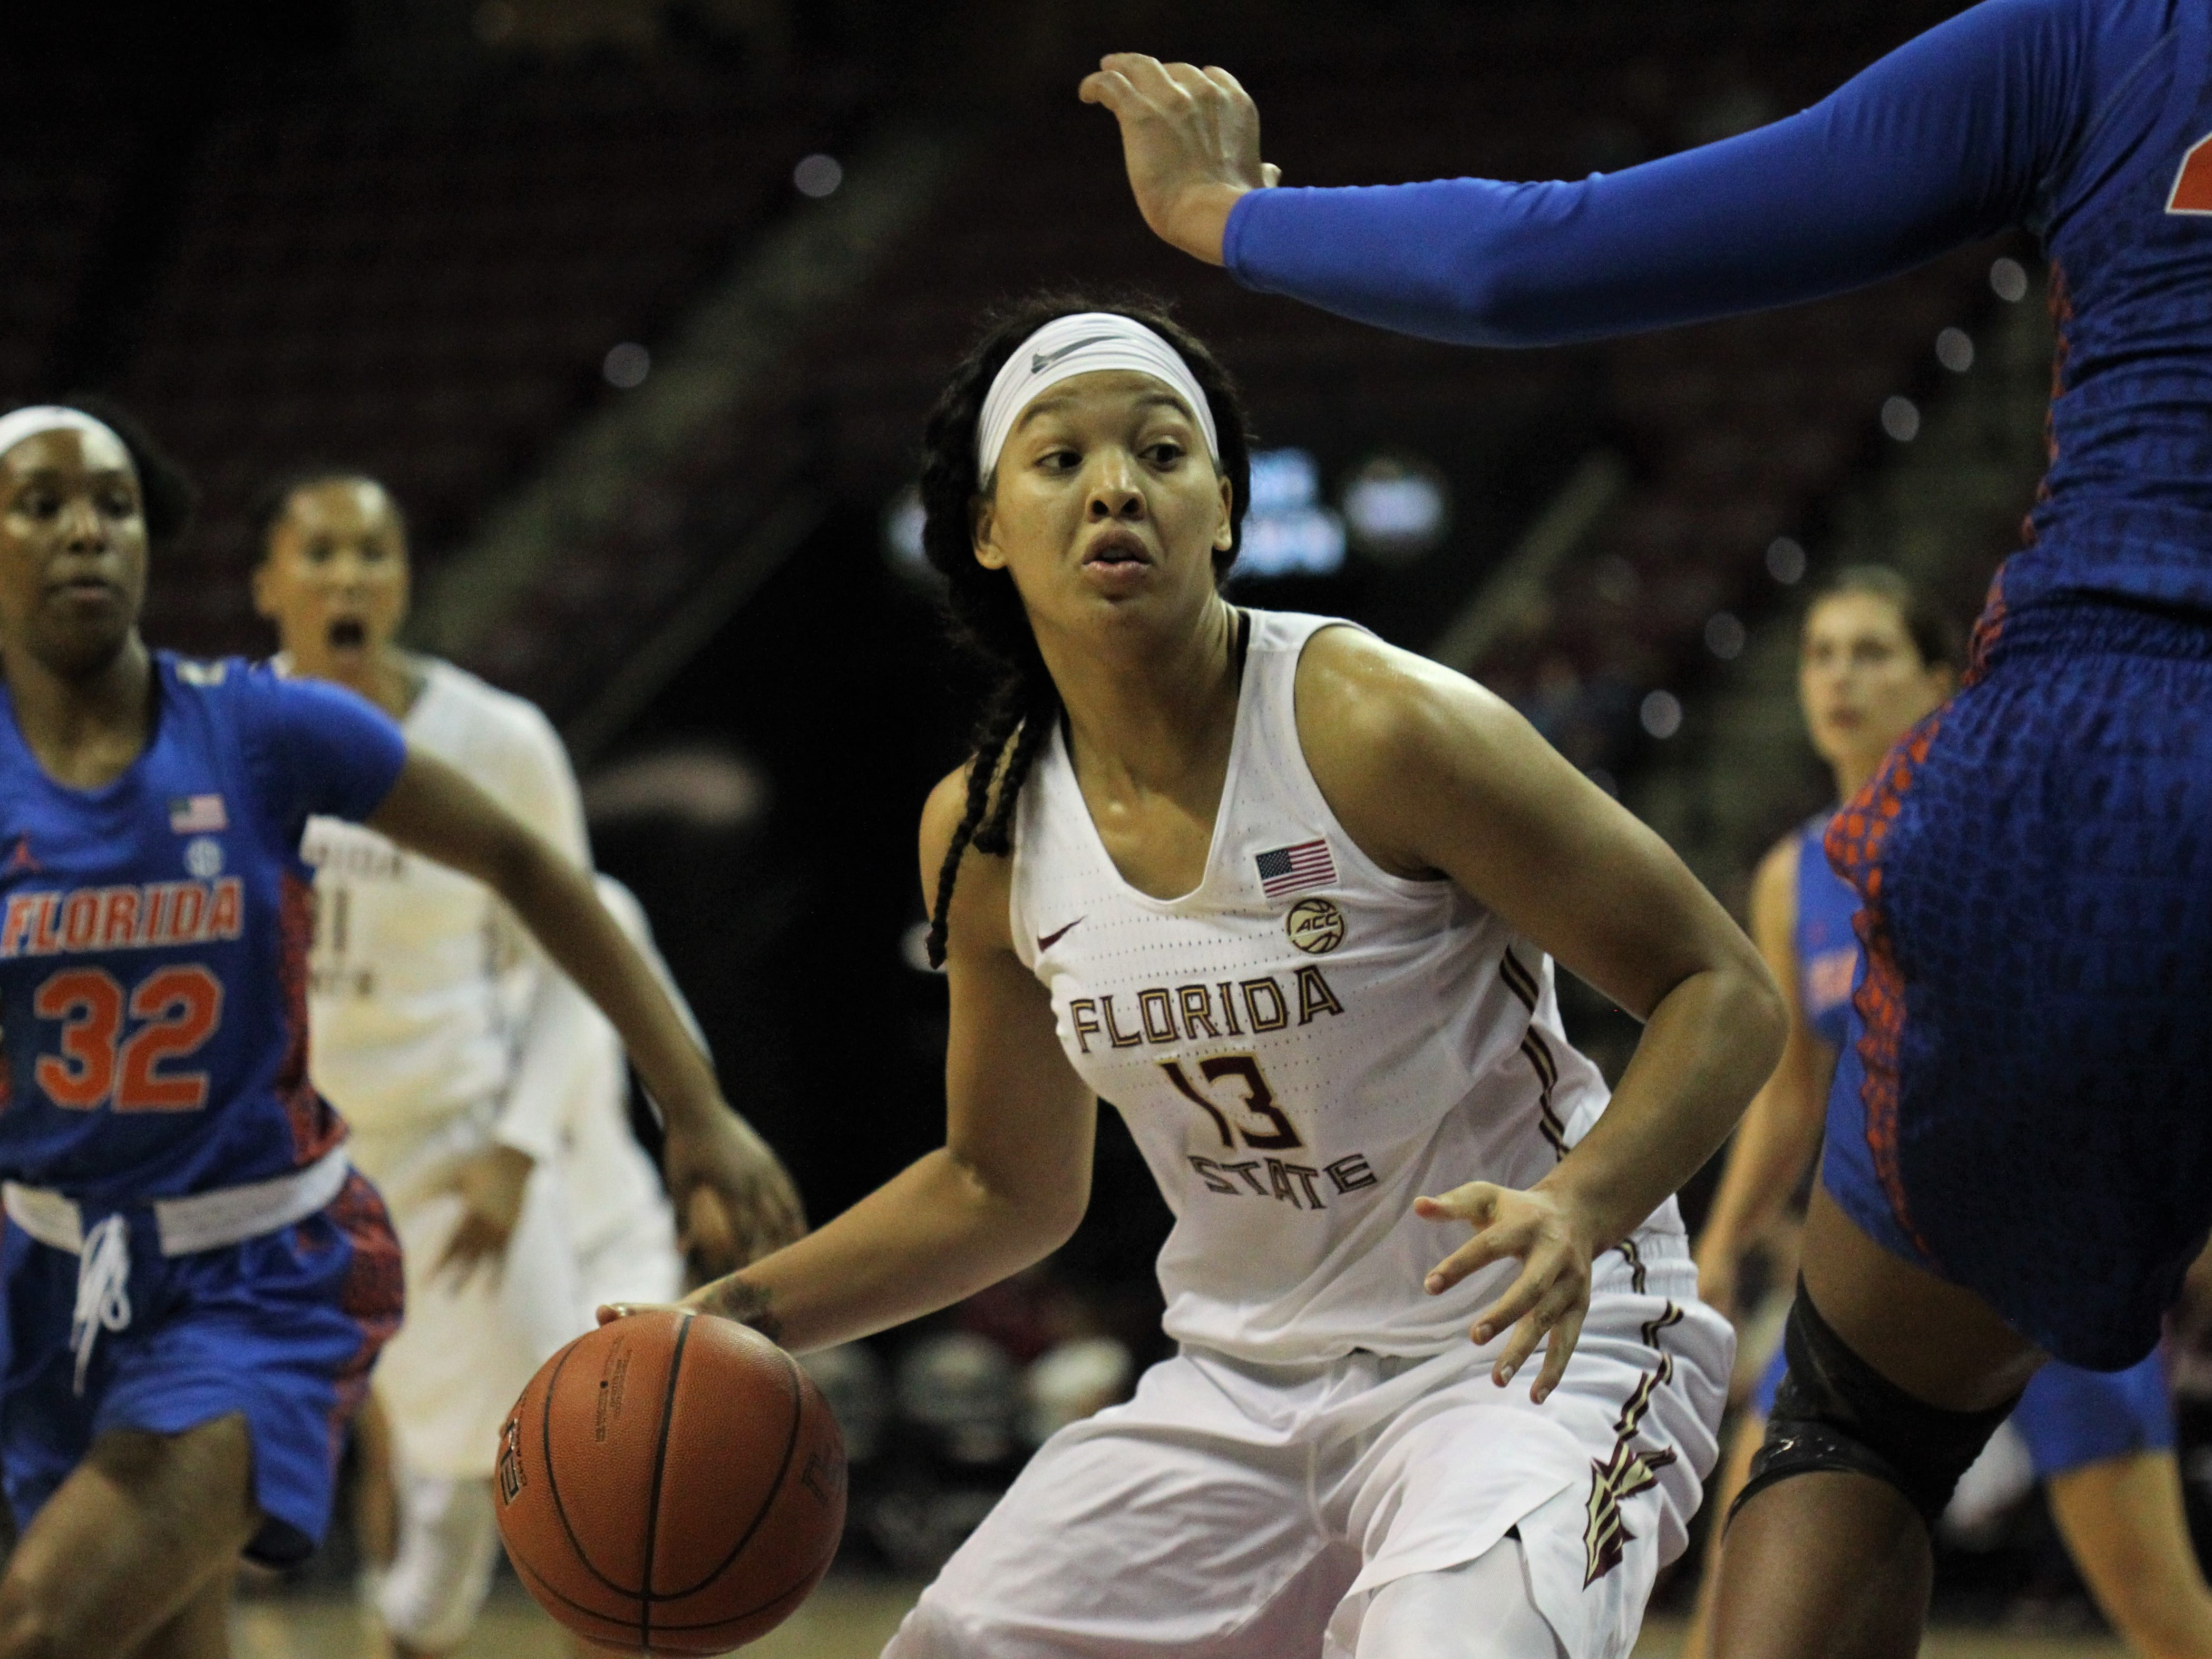 Florida State's Nausia Woolfolk tries to drive during the first half of the Seminoles' game against Florida at the Tucker Civic Center on Nov. 11, 2018.